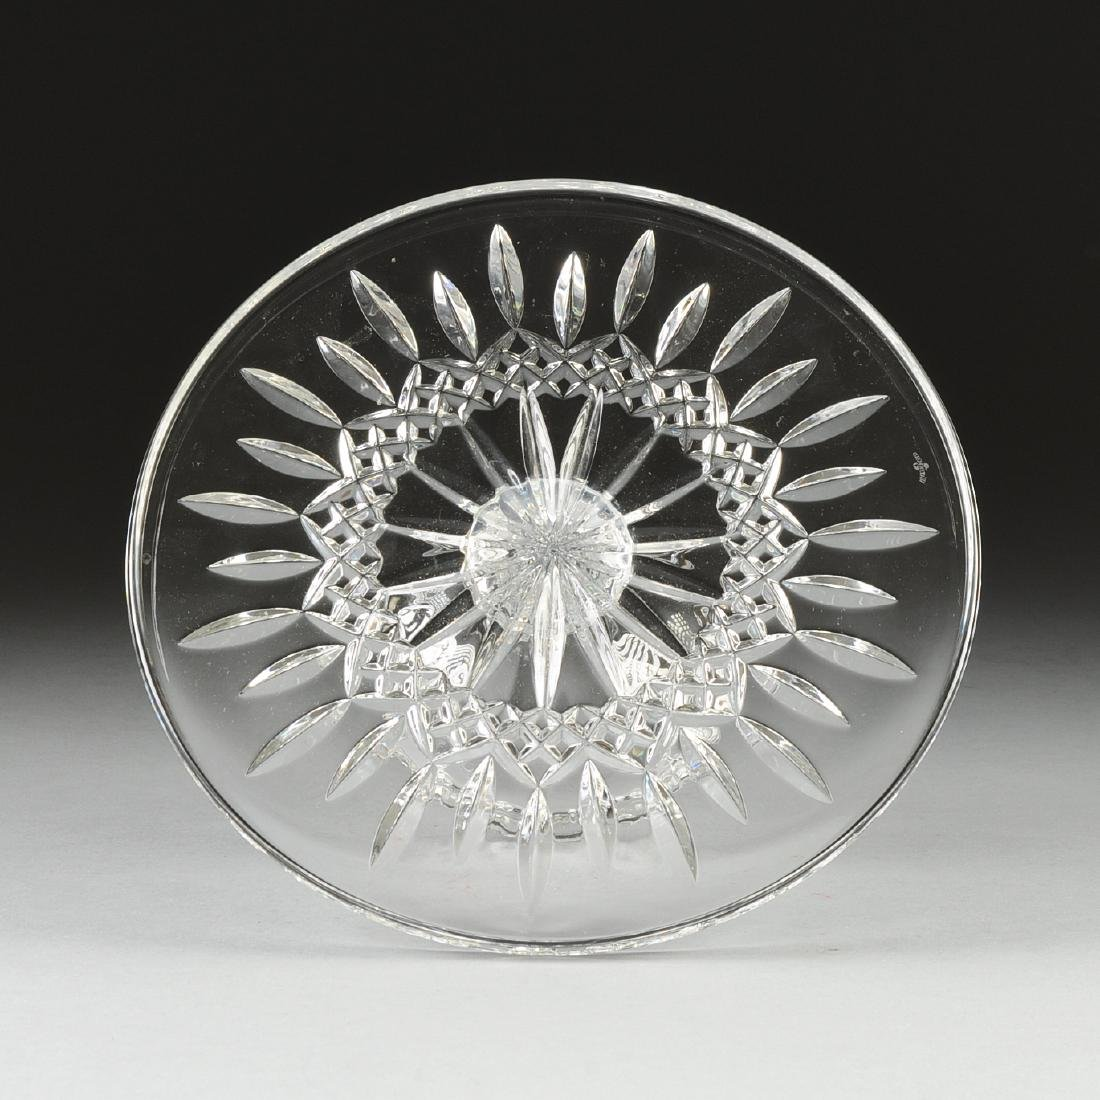 A WATERFORD CUT CRYSTAL ROUND CAKE STAND, IRELAND, LATE - 2